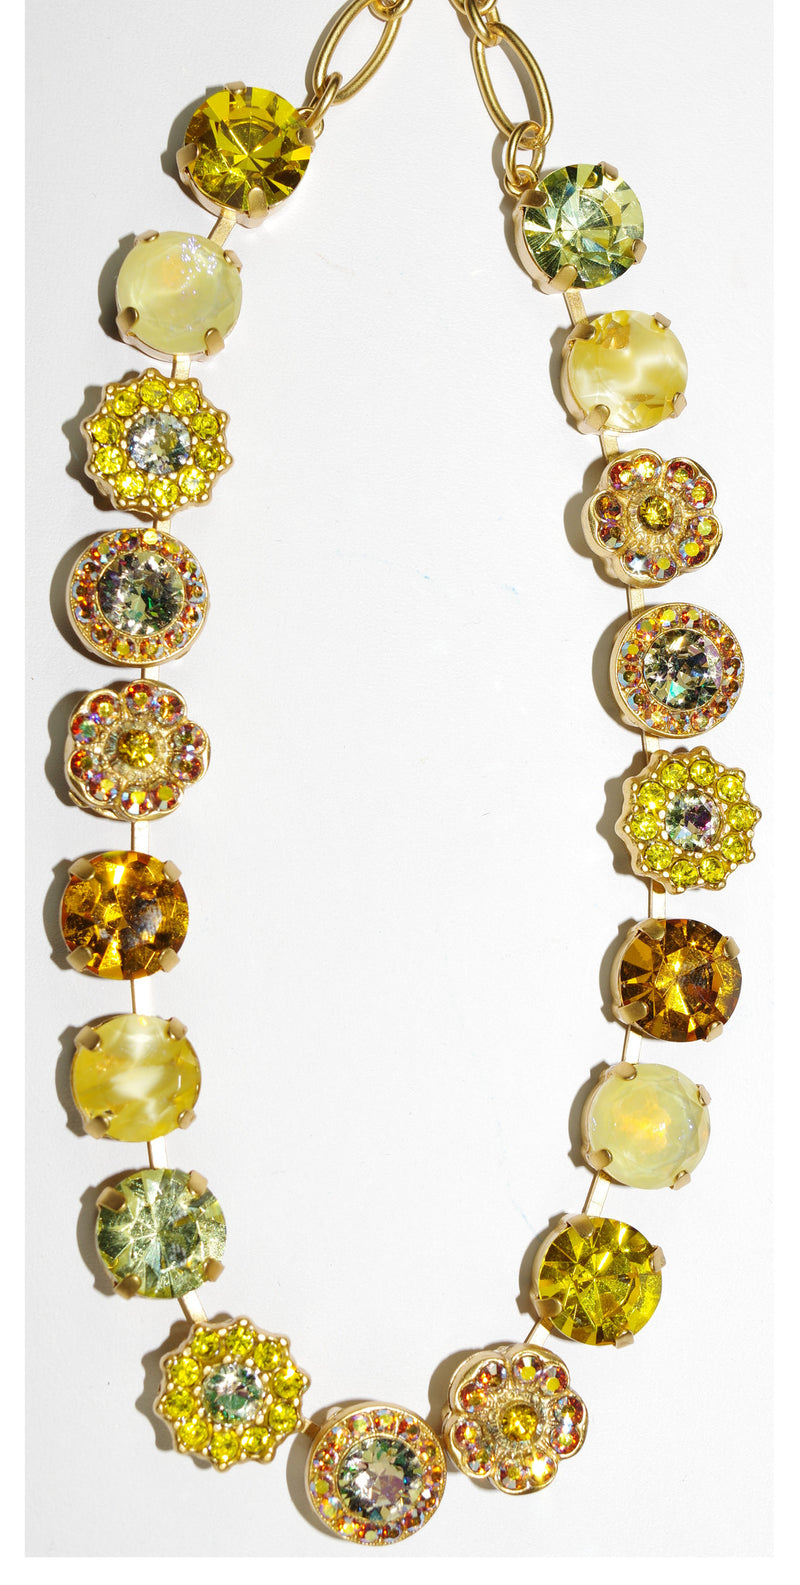 "MARIANA NECKLACE YELLOW BRICK ROAD SOPHIA: yellow, amber, a/b stones in yellow gold setting, 16"" adjustable chain"